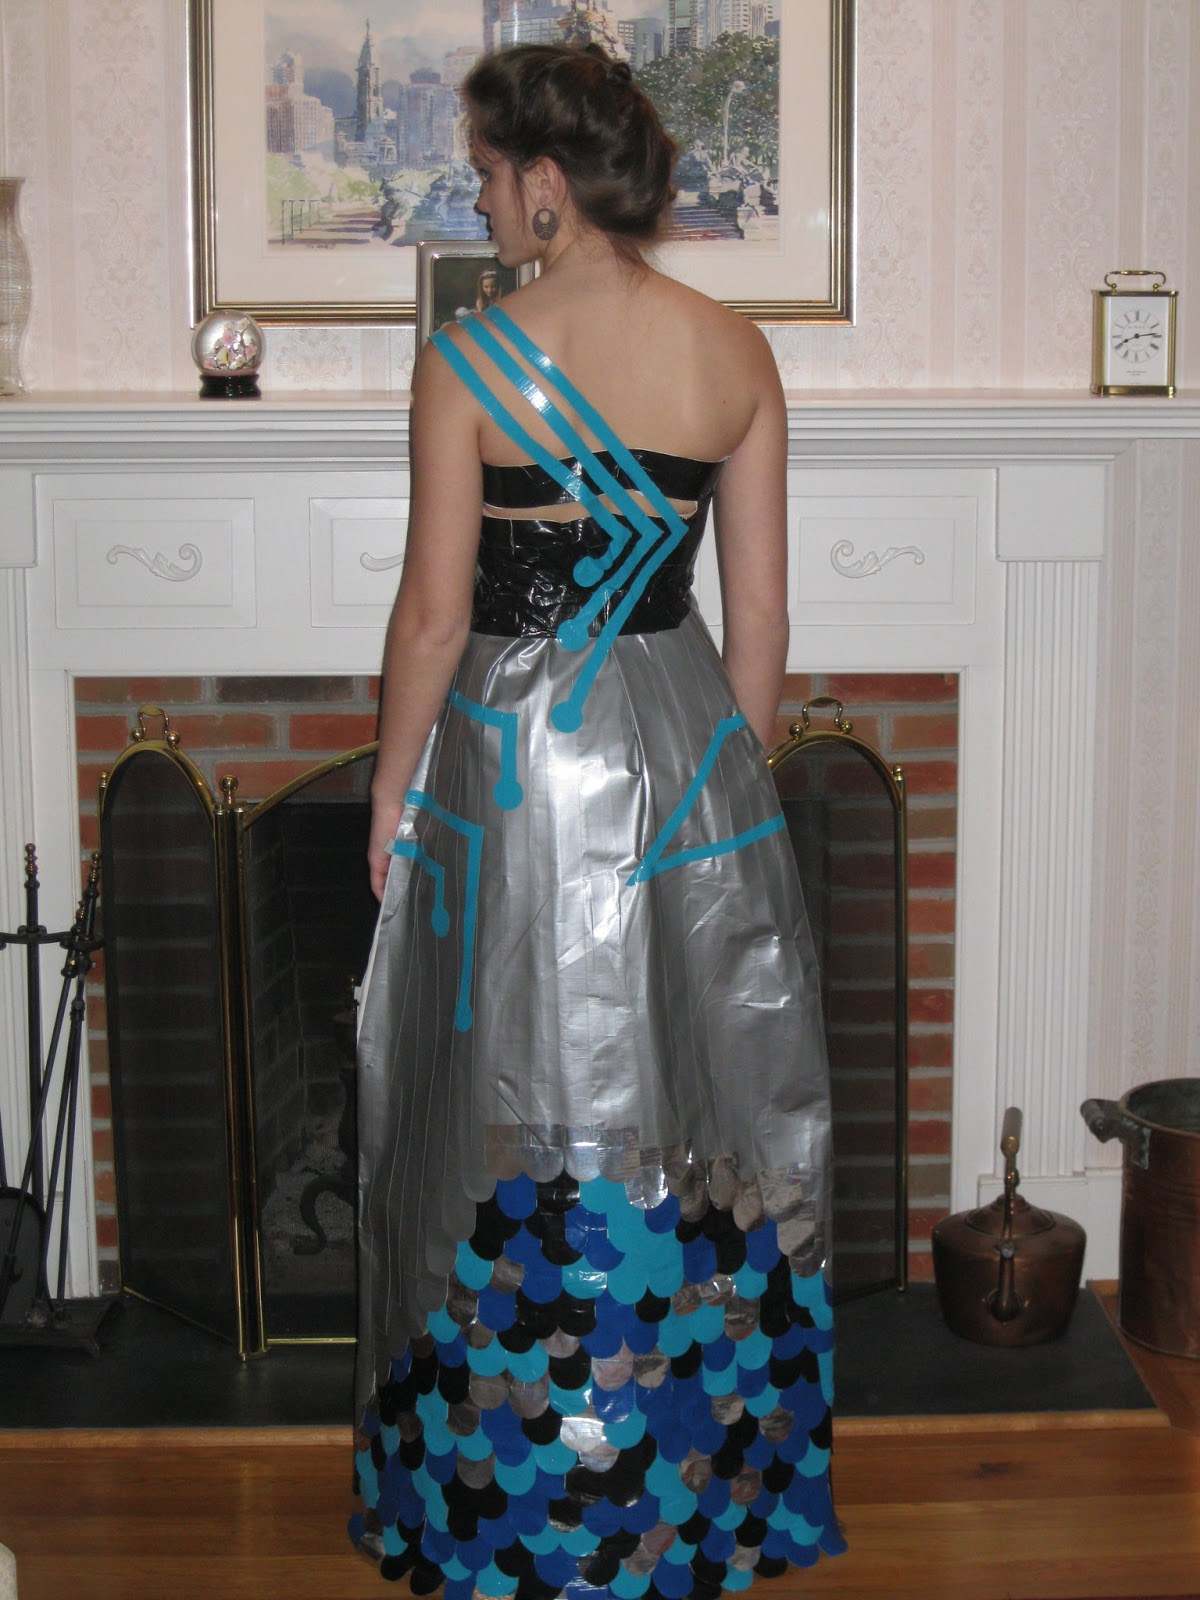 tomorrowhappensnow: Duct Tape Prom Dress  Duct